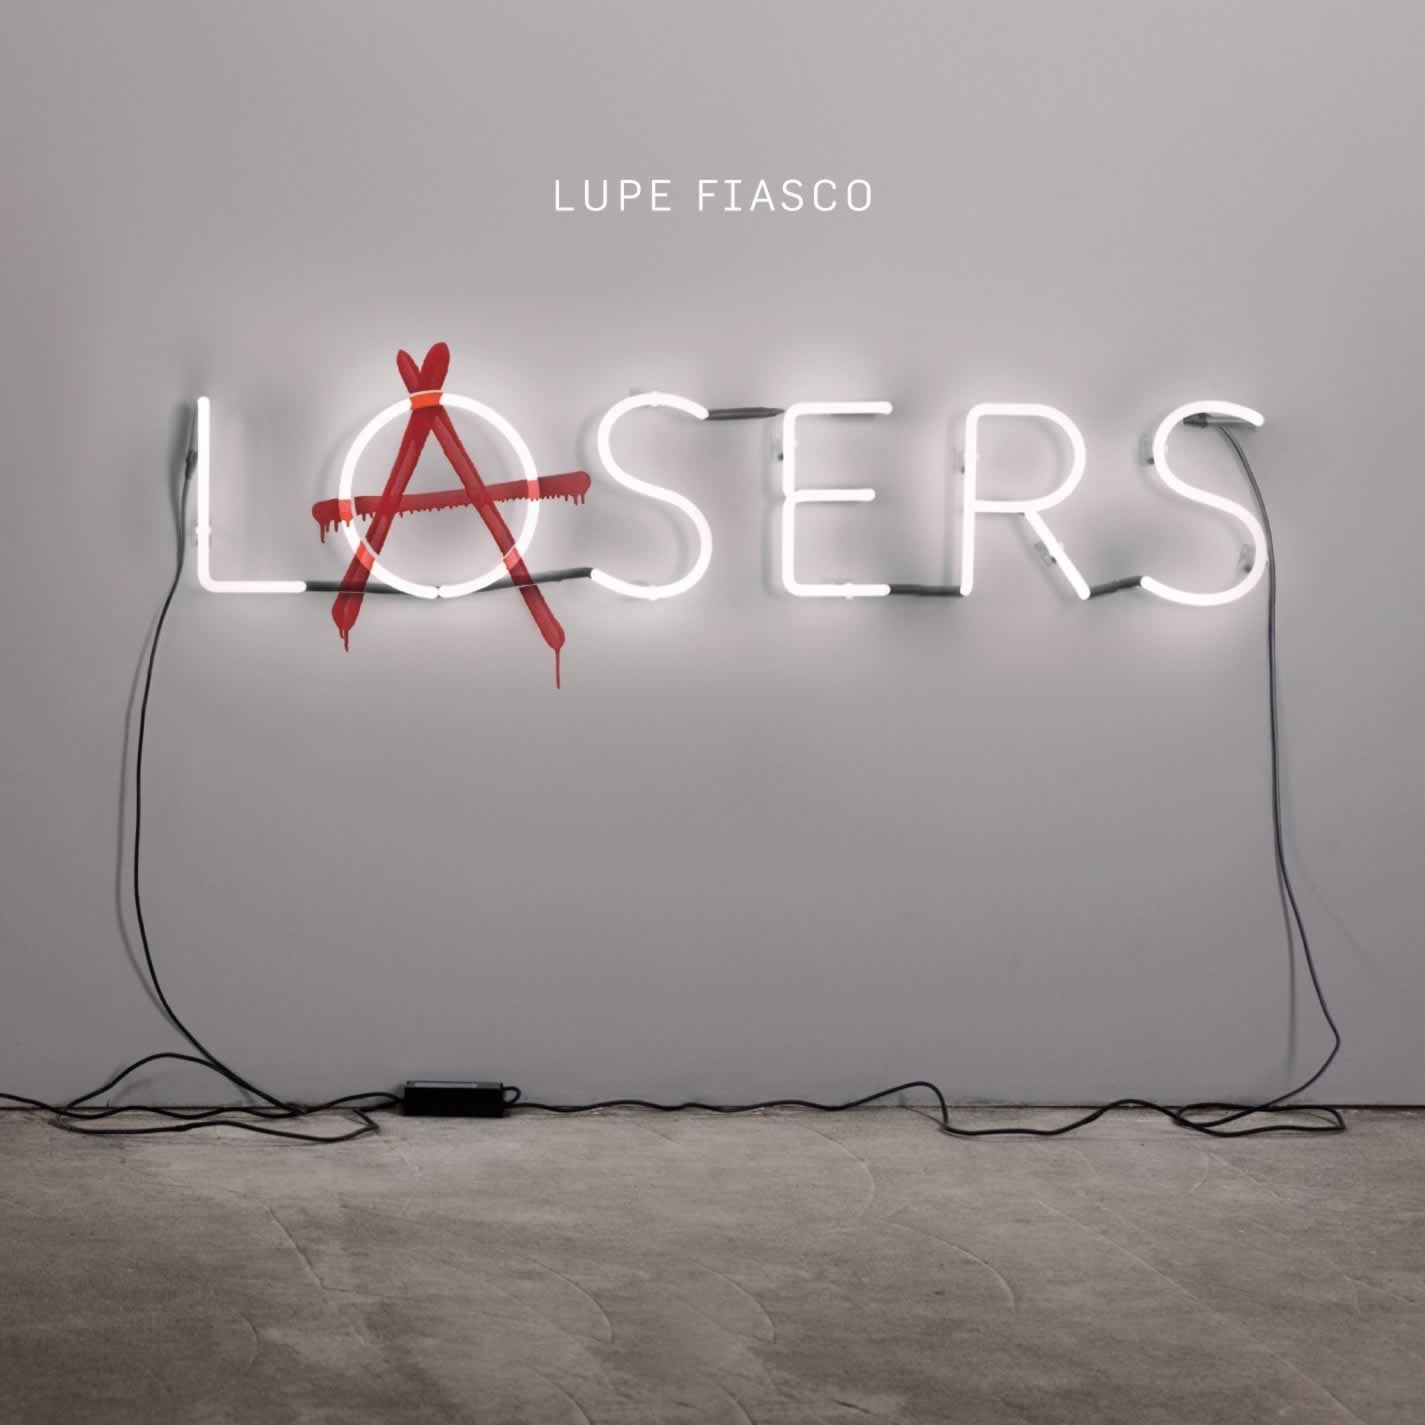 Lupe Fiasco Lasers